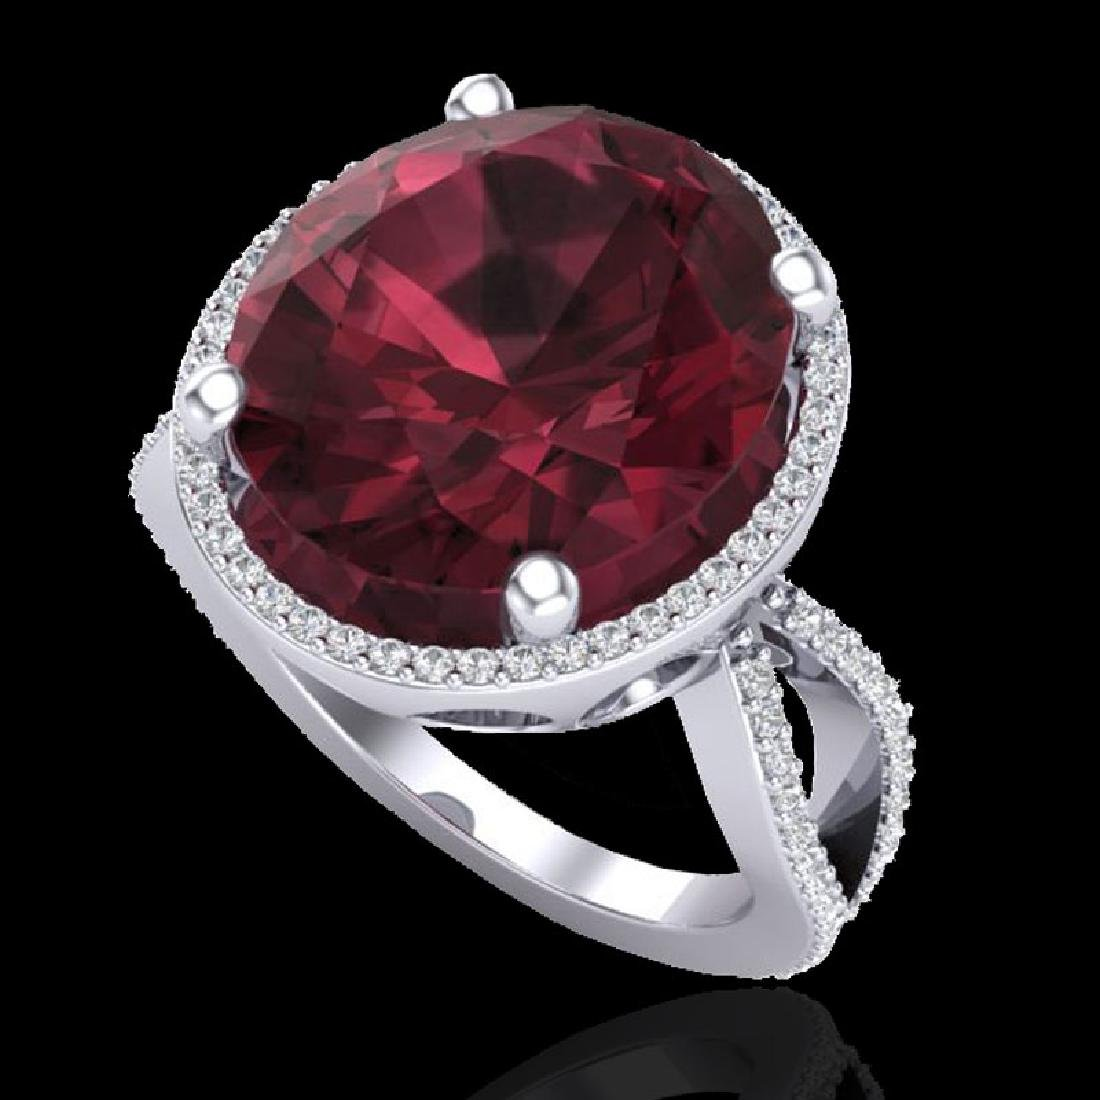 10 CTW Garnet & Micro Pave VS/SI Diamond Halo Ring 18K - 2